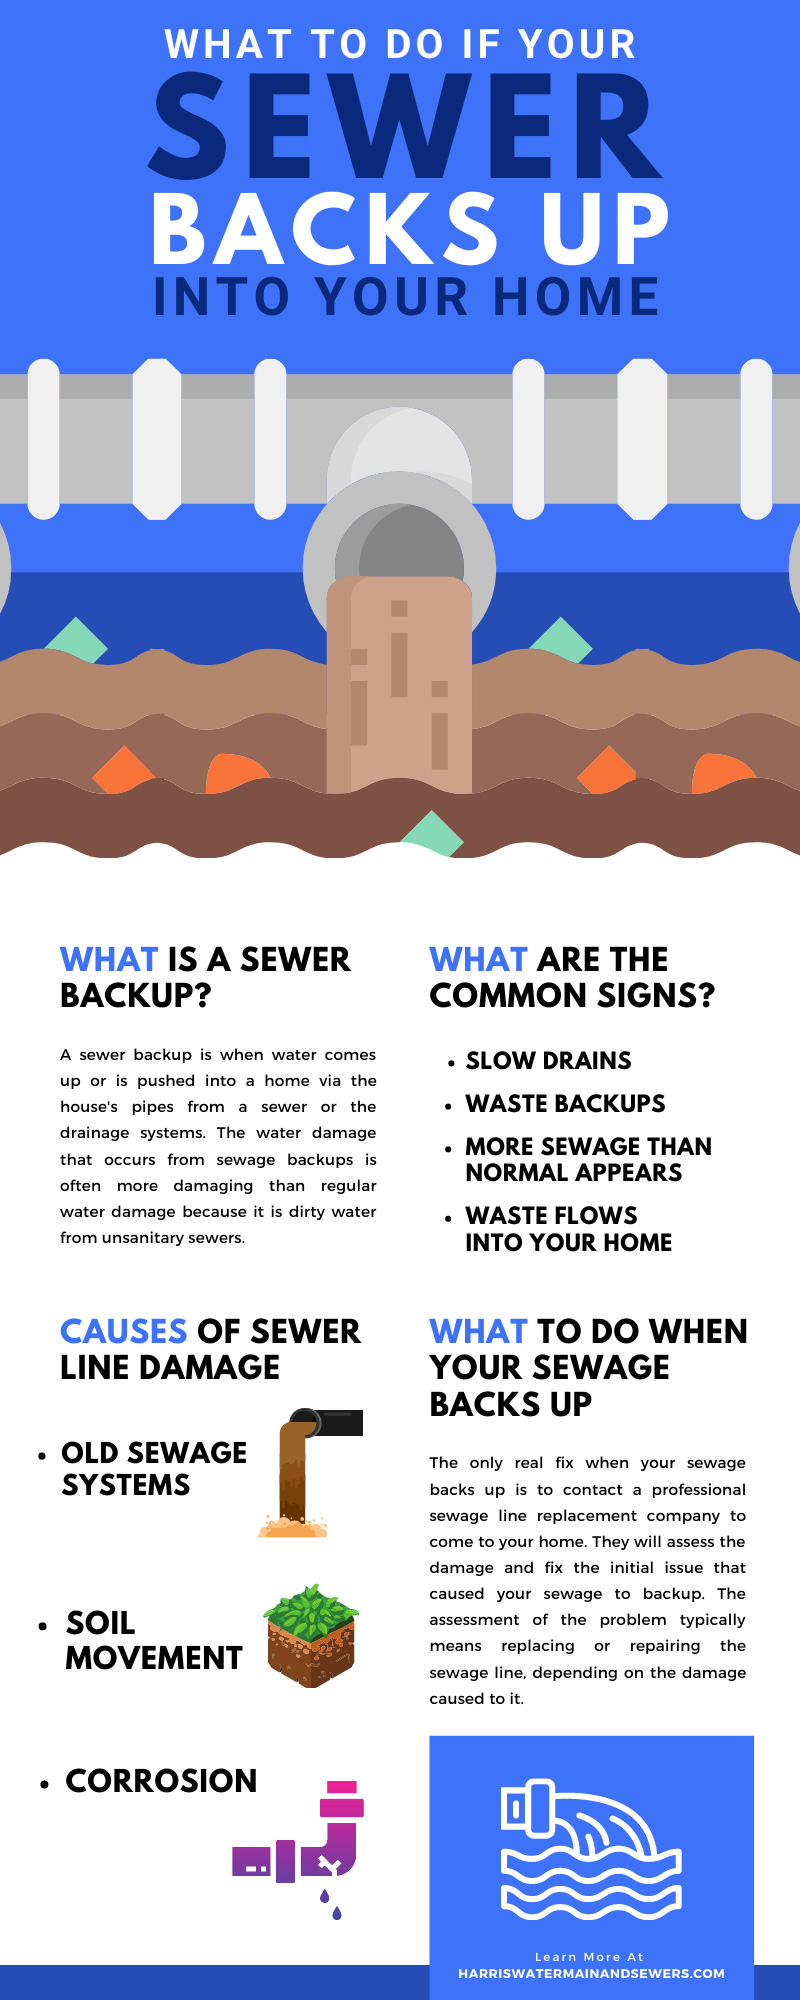 What To Do If Your Sewer Backs Up Into Your Home